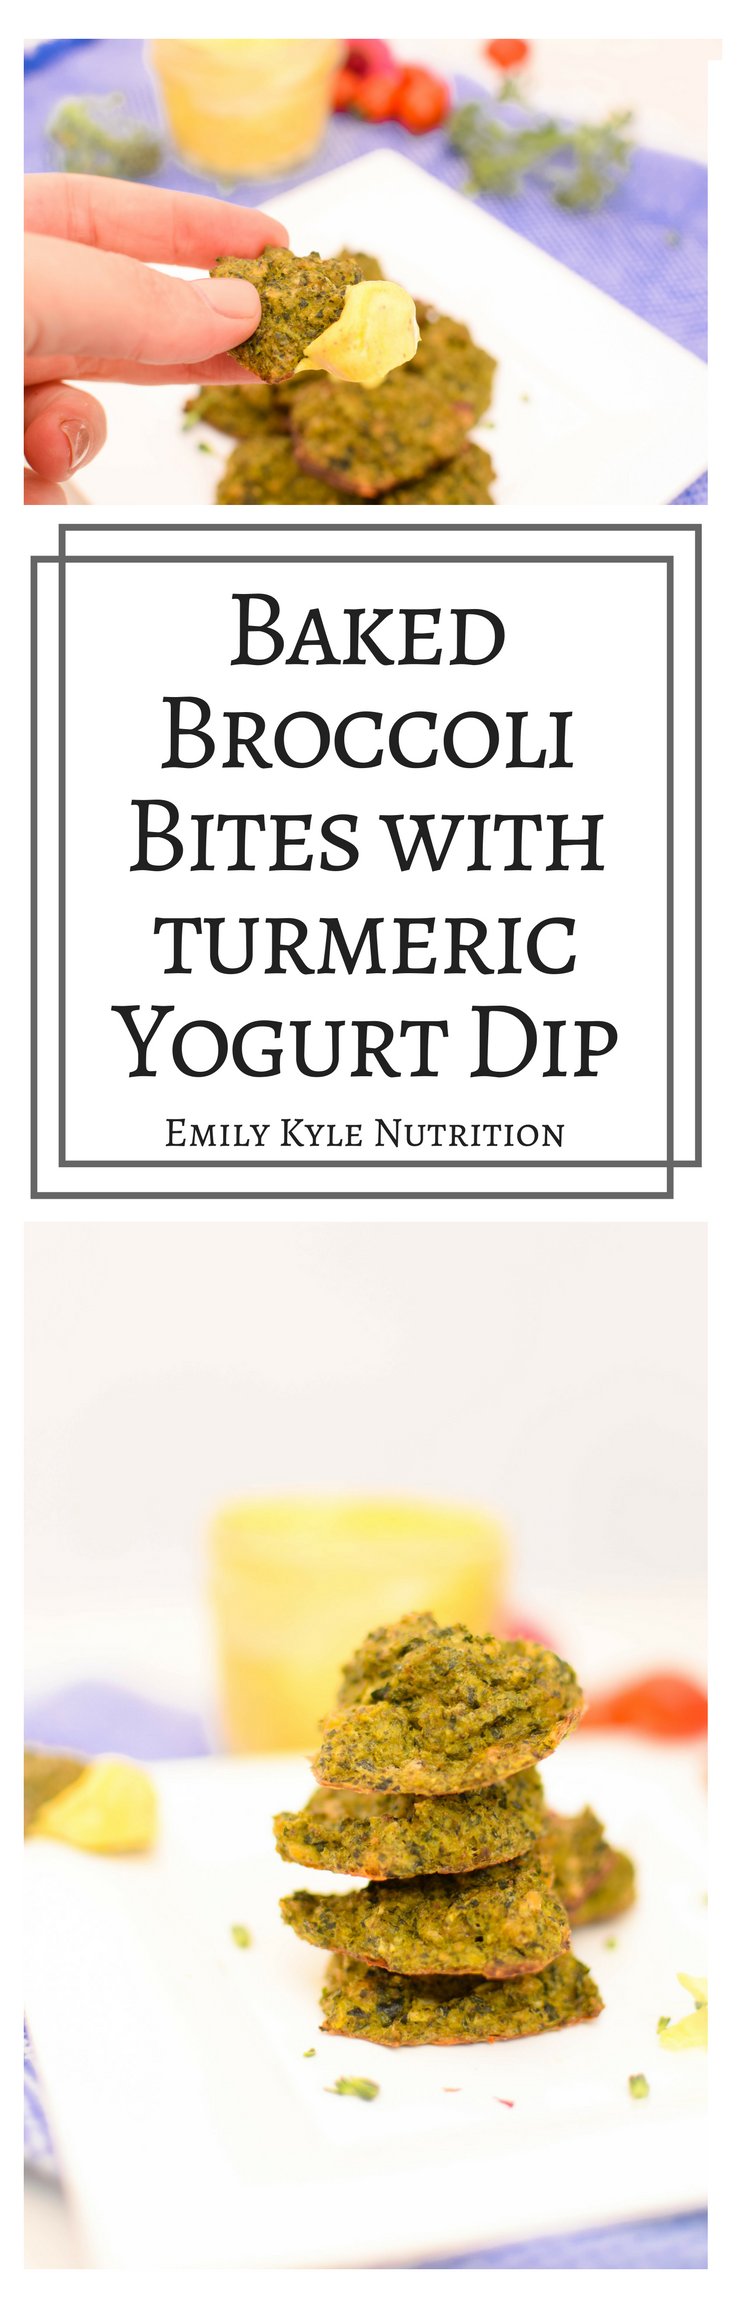 Move over tater-tots, these Baked Broccoli Bites with a vibrant Turmeric Yogurt Dip will turn anyone in the family into a veggie lover!